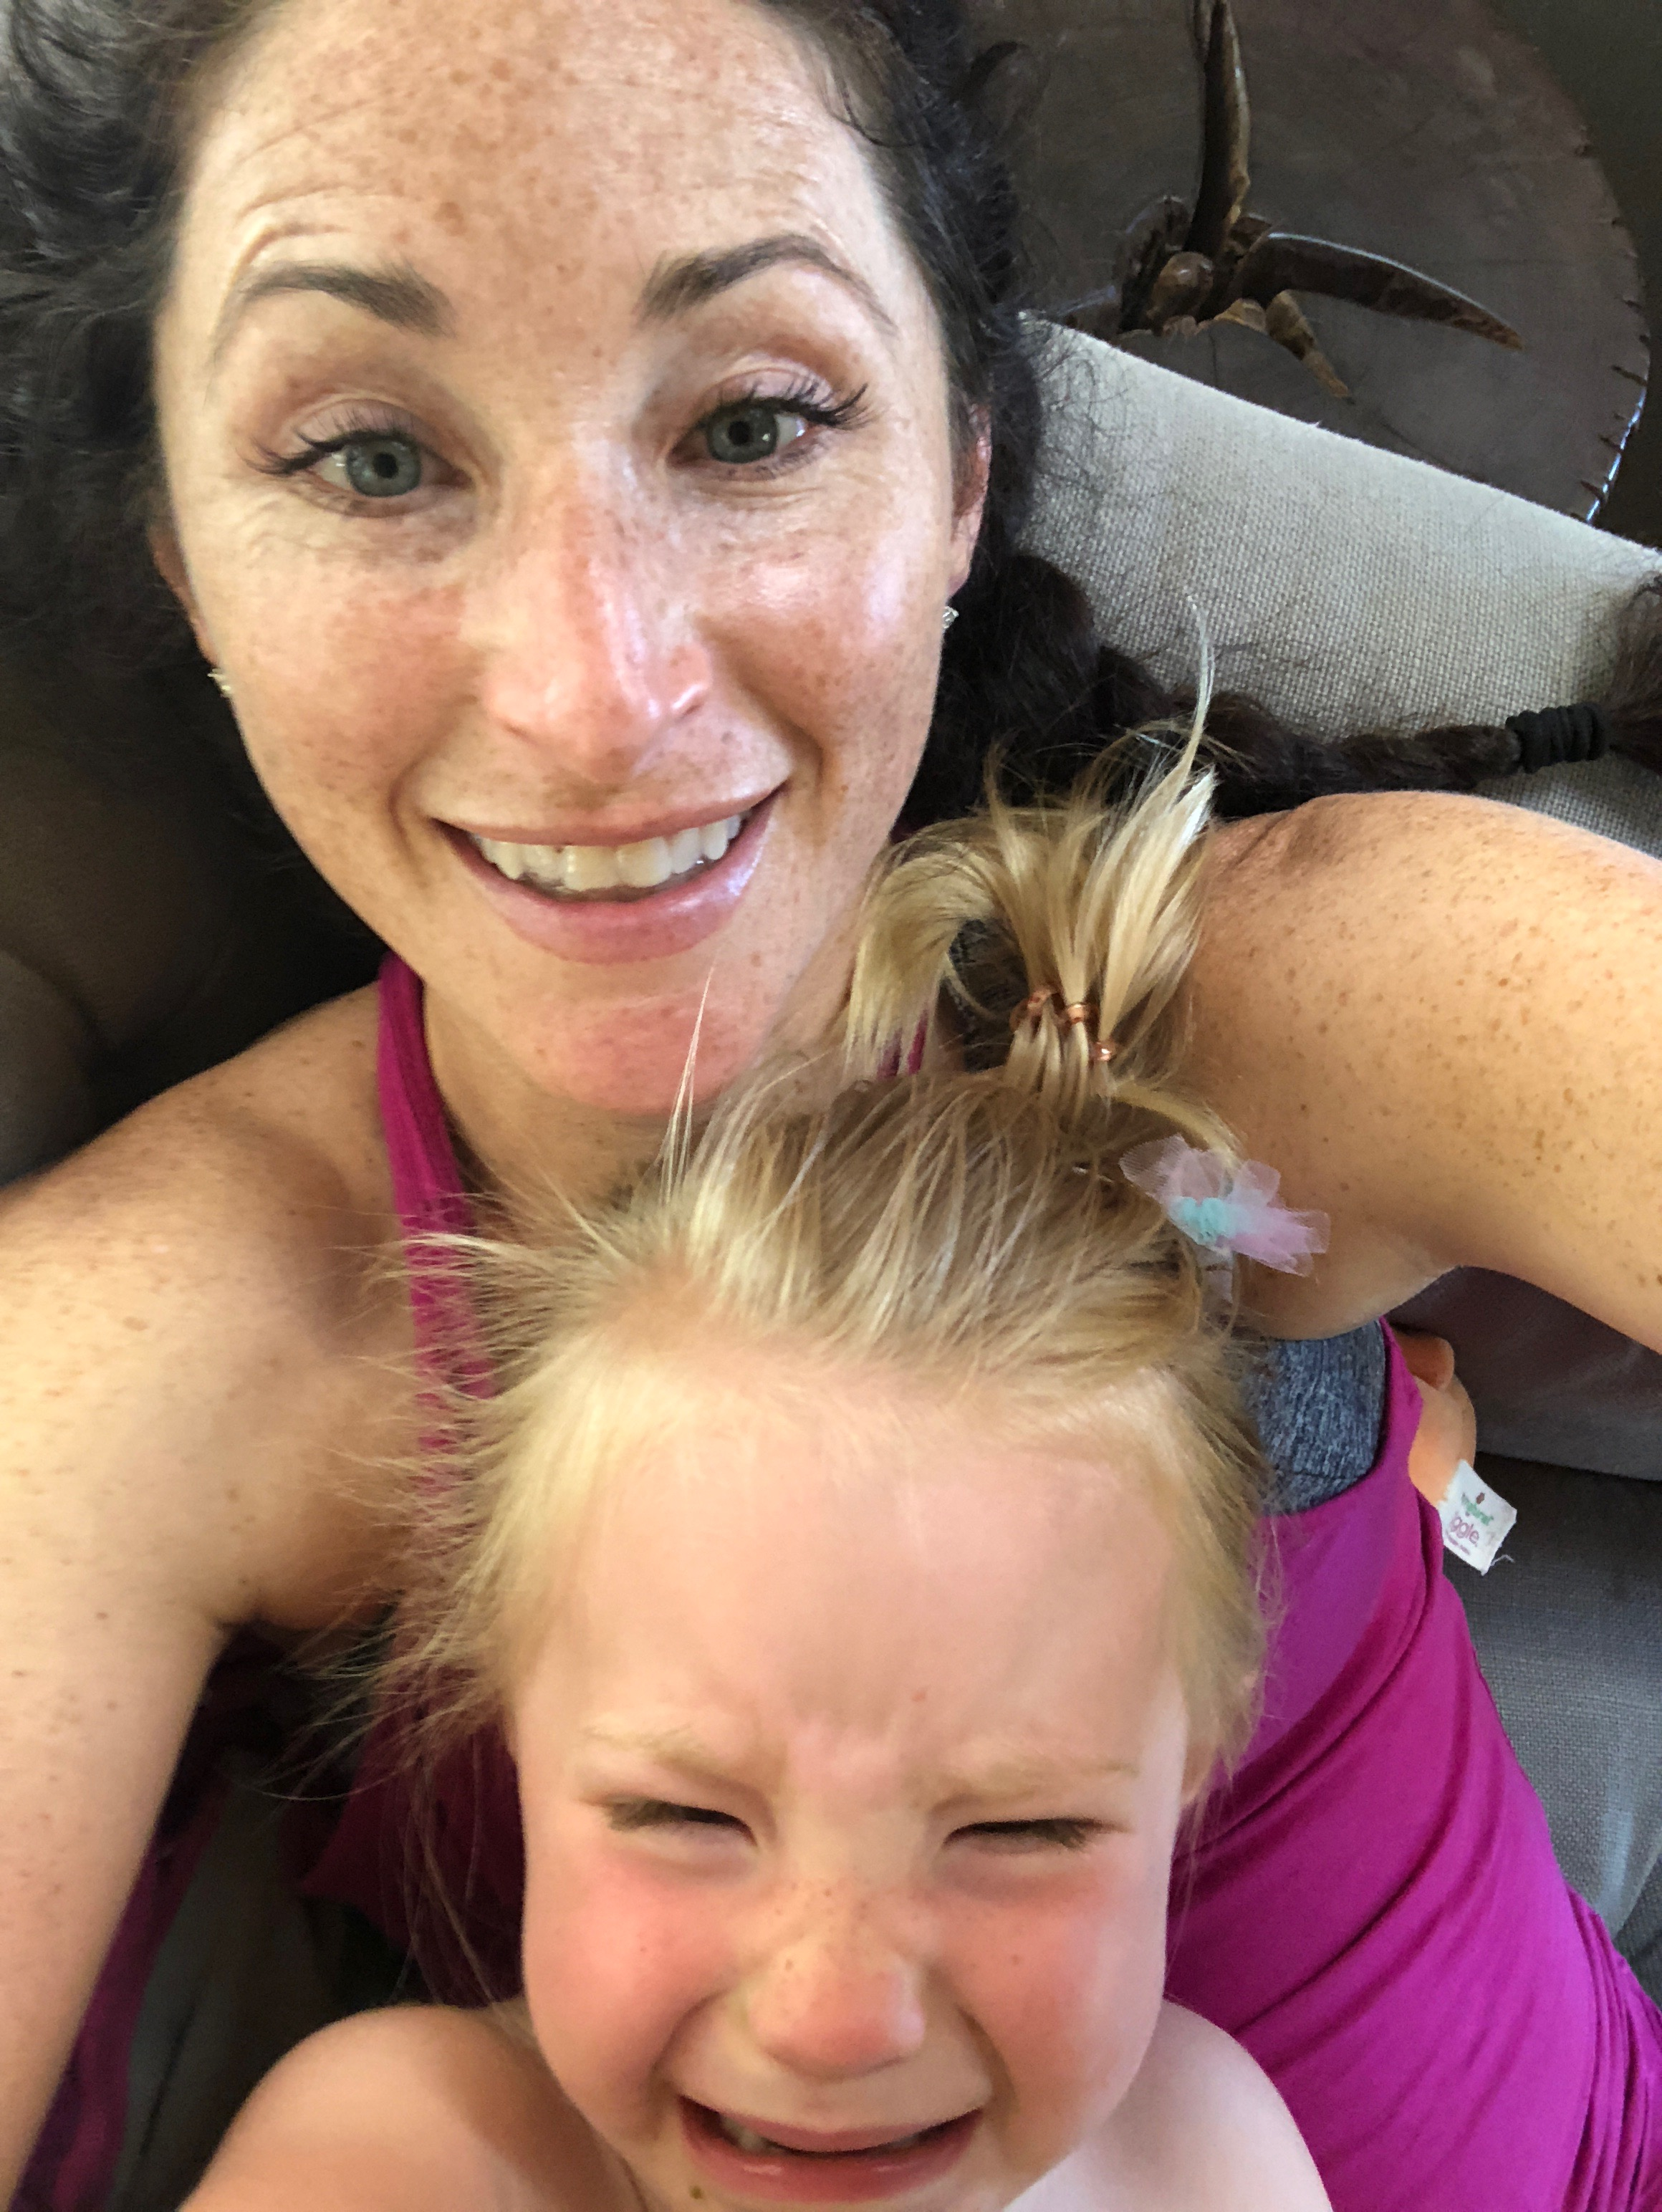 This is what happens when you tell a 3-year-old you can't get on an airplane to Hawaii right now. - Or any one of thousands of other practical things.